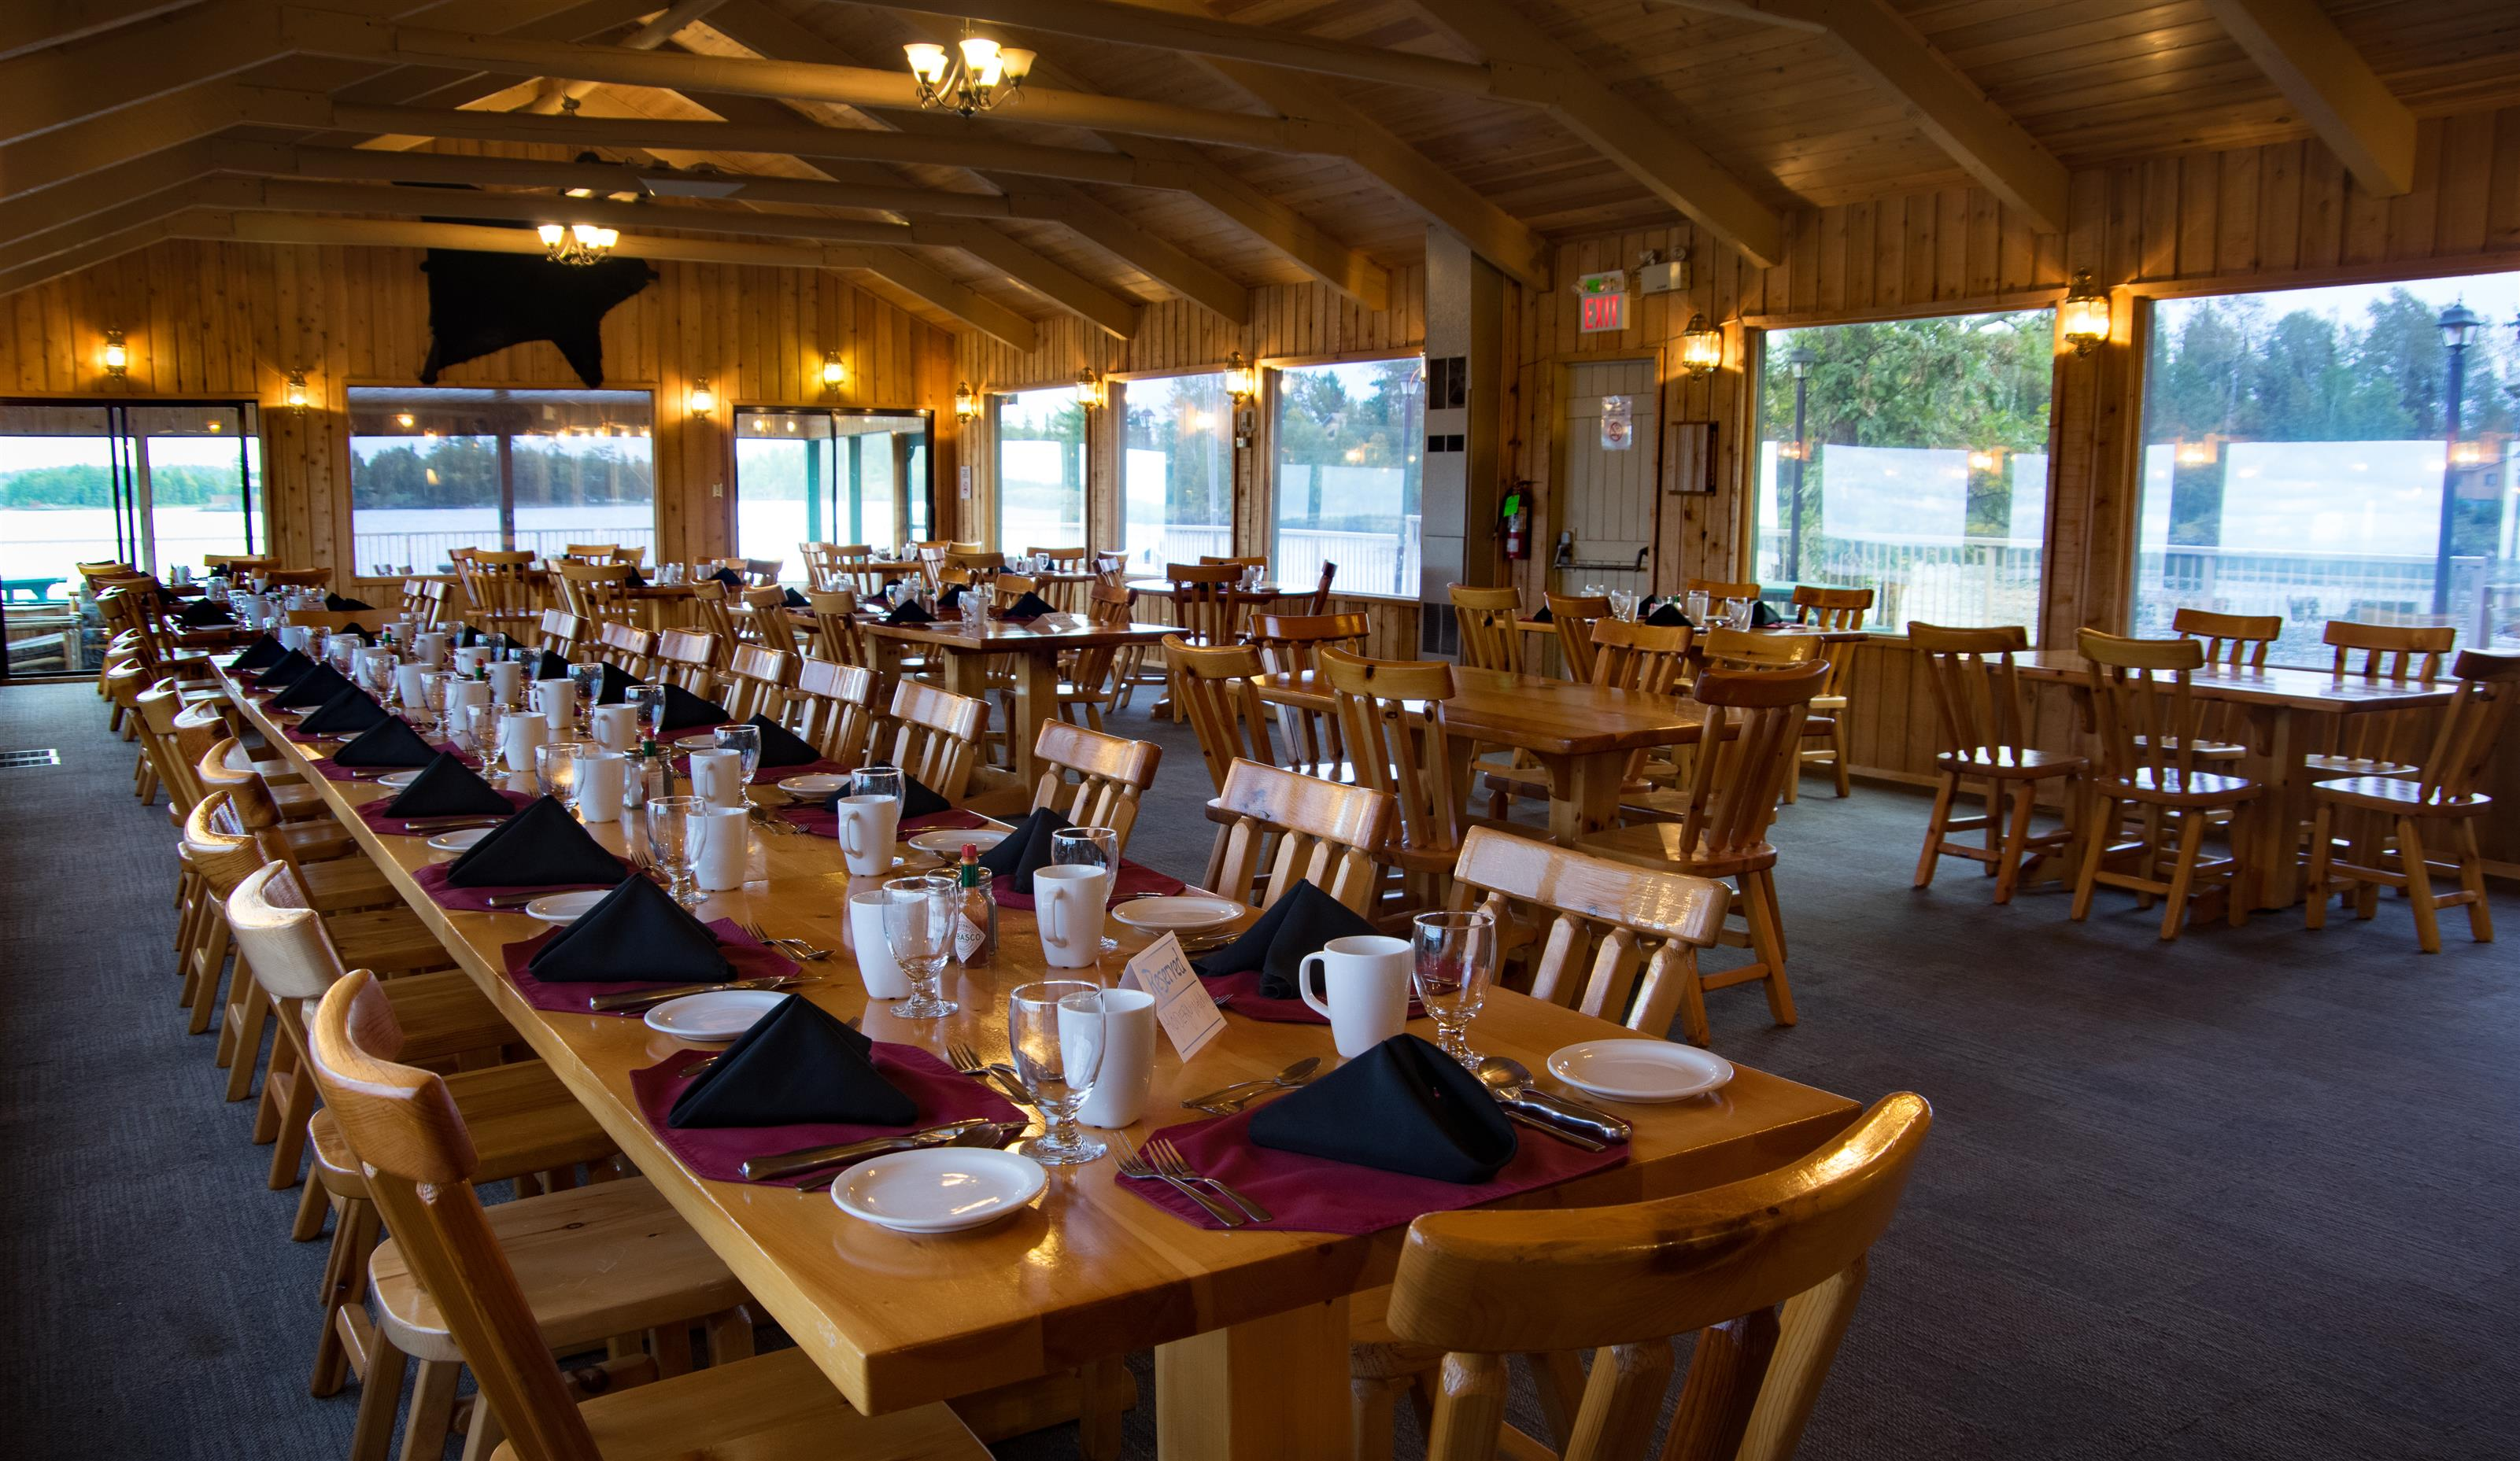 picture of a long dining table and some other tables set up for an event inside the lodge